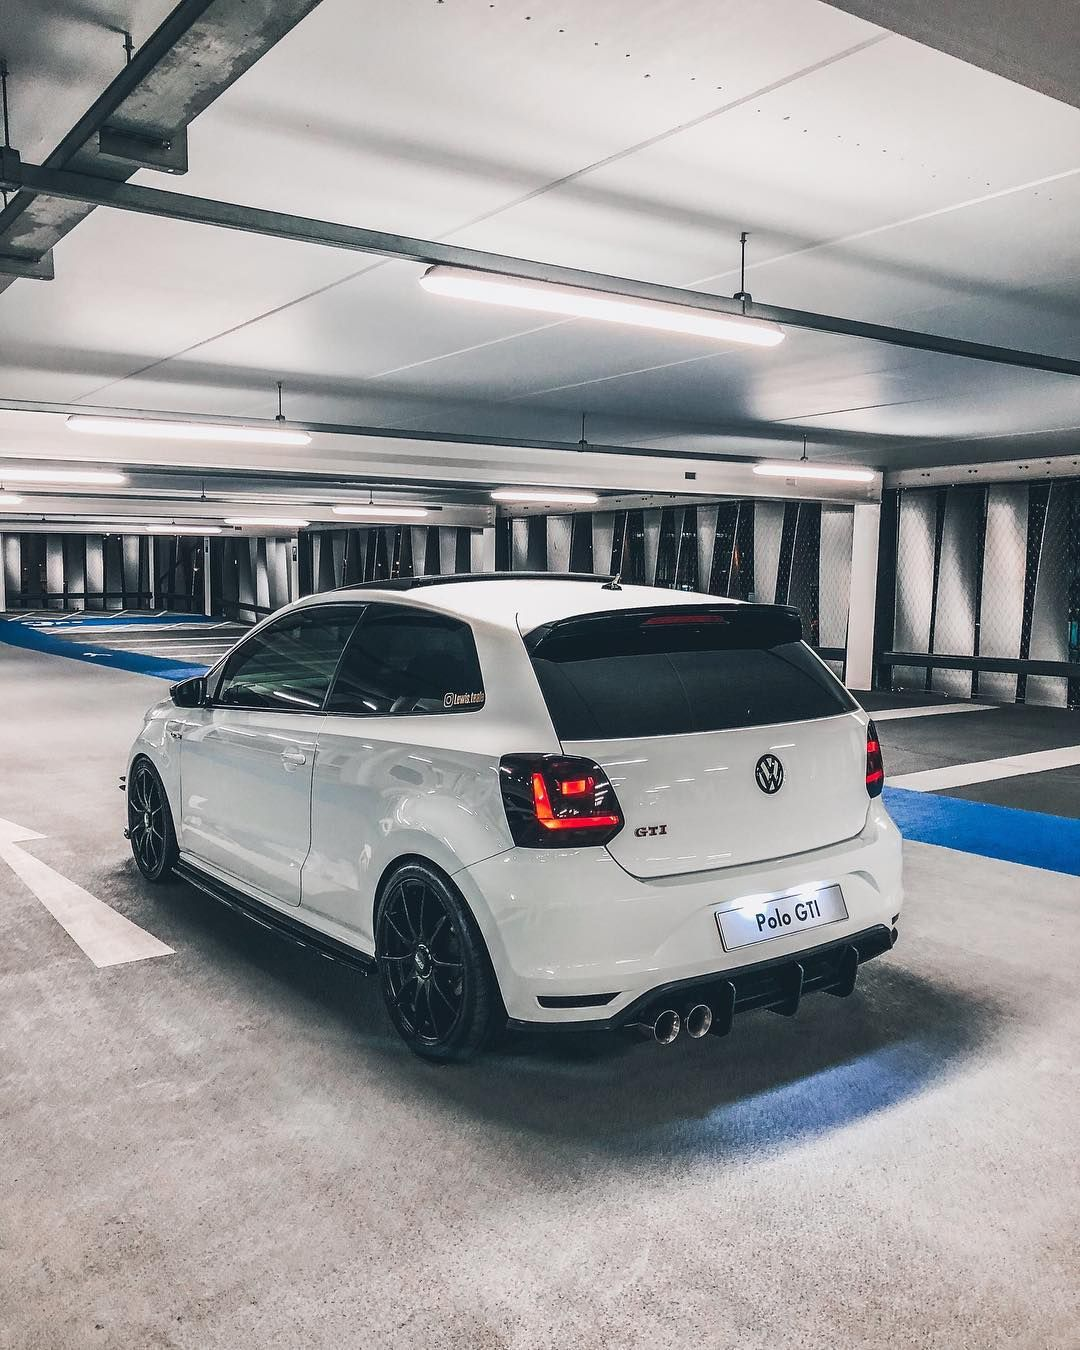 Best Car Park Lighting Ever Polo6cgti Lewis Teale On Instagram Volkswagen Polo Gti Polo Car Vw Polo Gti